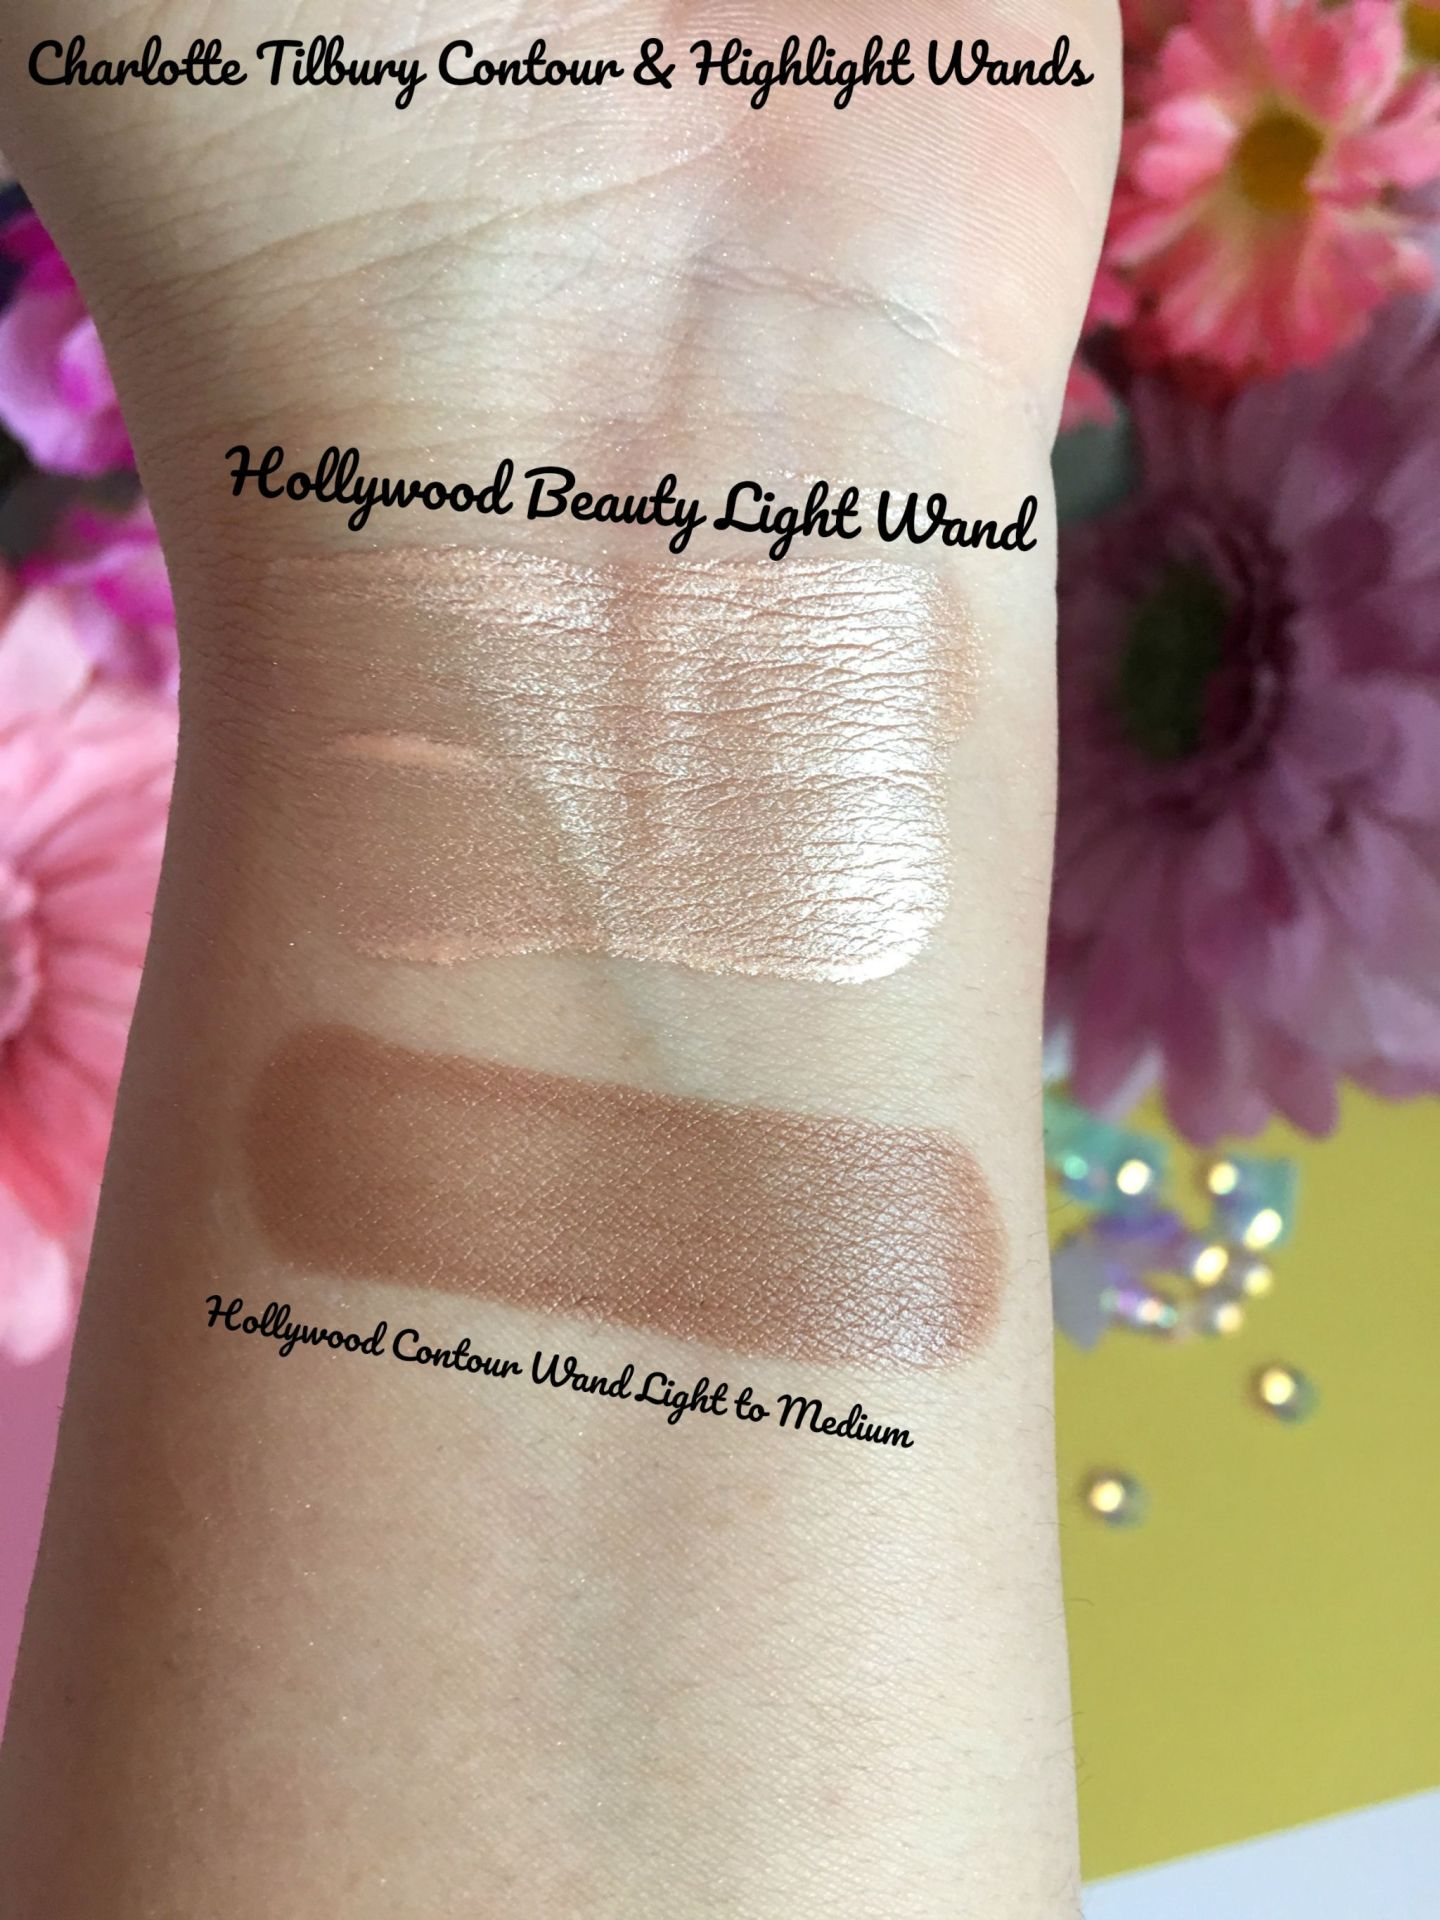 CT Contour & Highlight Wand Swatches Musings of a Makup Junkie